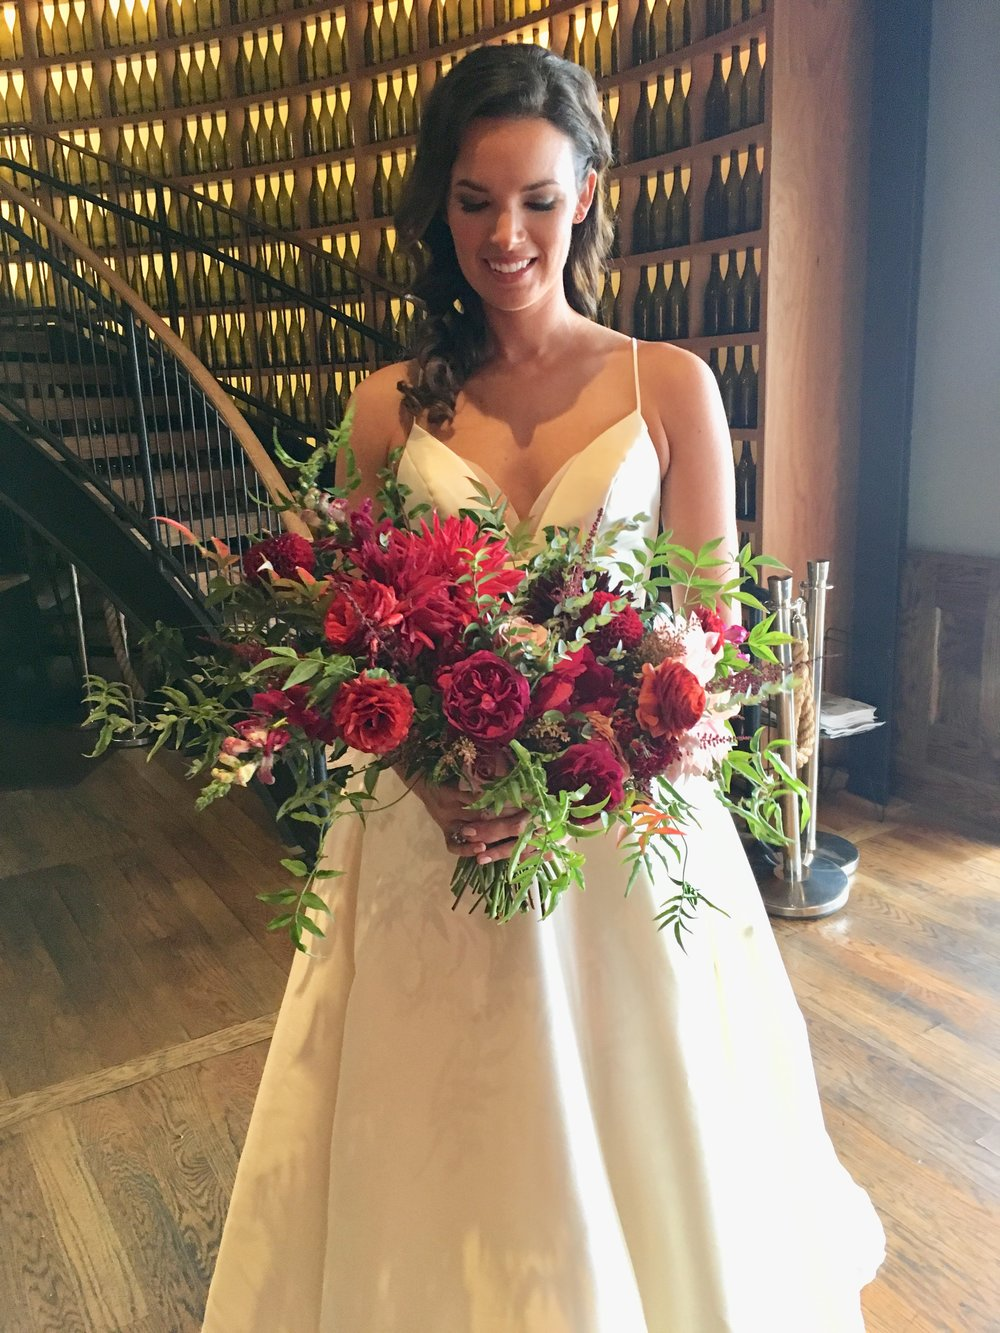 KELLY AND TUCKER MARRIED AT CITY WINERY NASHVILLE TN AND WHAT A BEAUTIFUL BOUQUET.